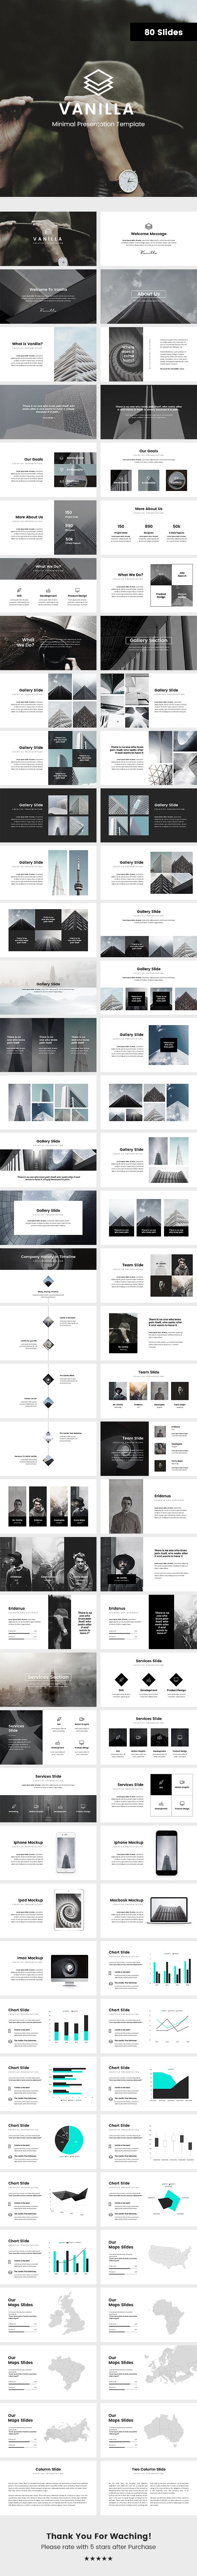 Vanilla Minimal Keynote Template  #infographic #portfolio • Download ➝ https://graphicriver.net/item/vanilla-minimal-keynote-template/18162605?ref=pxcr